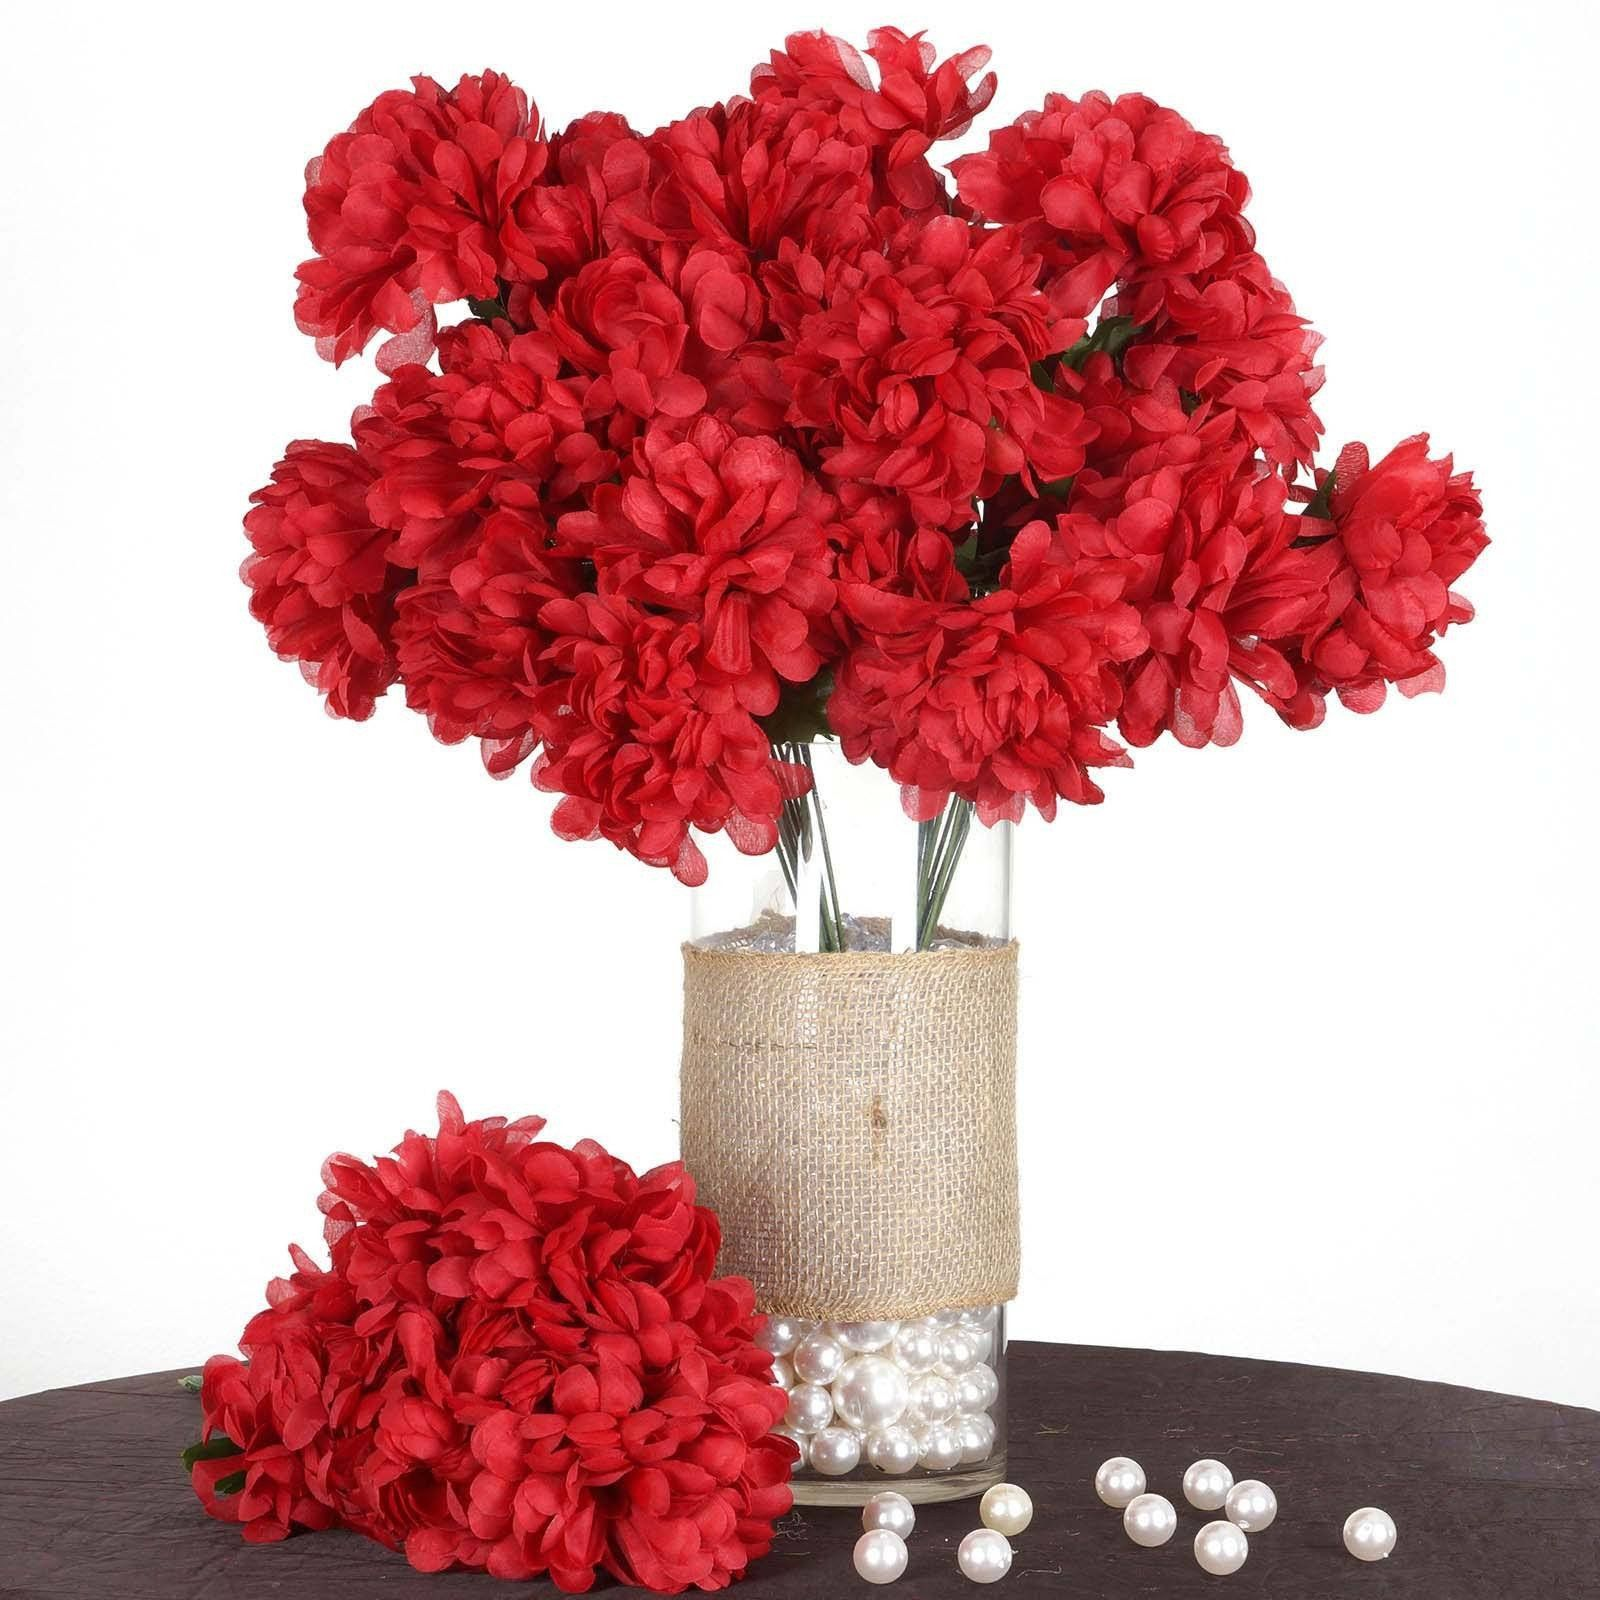 56 artificial red silk chrysanthemum flowers bush wedding bridal 56 artificial red silk chrysanthemum flowers bush wedding bridal bouquet vase decoration mightylinksfo